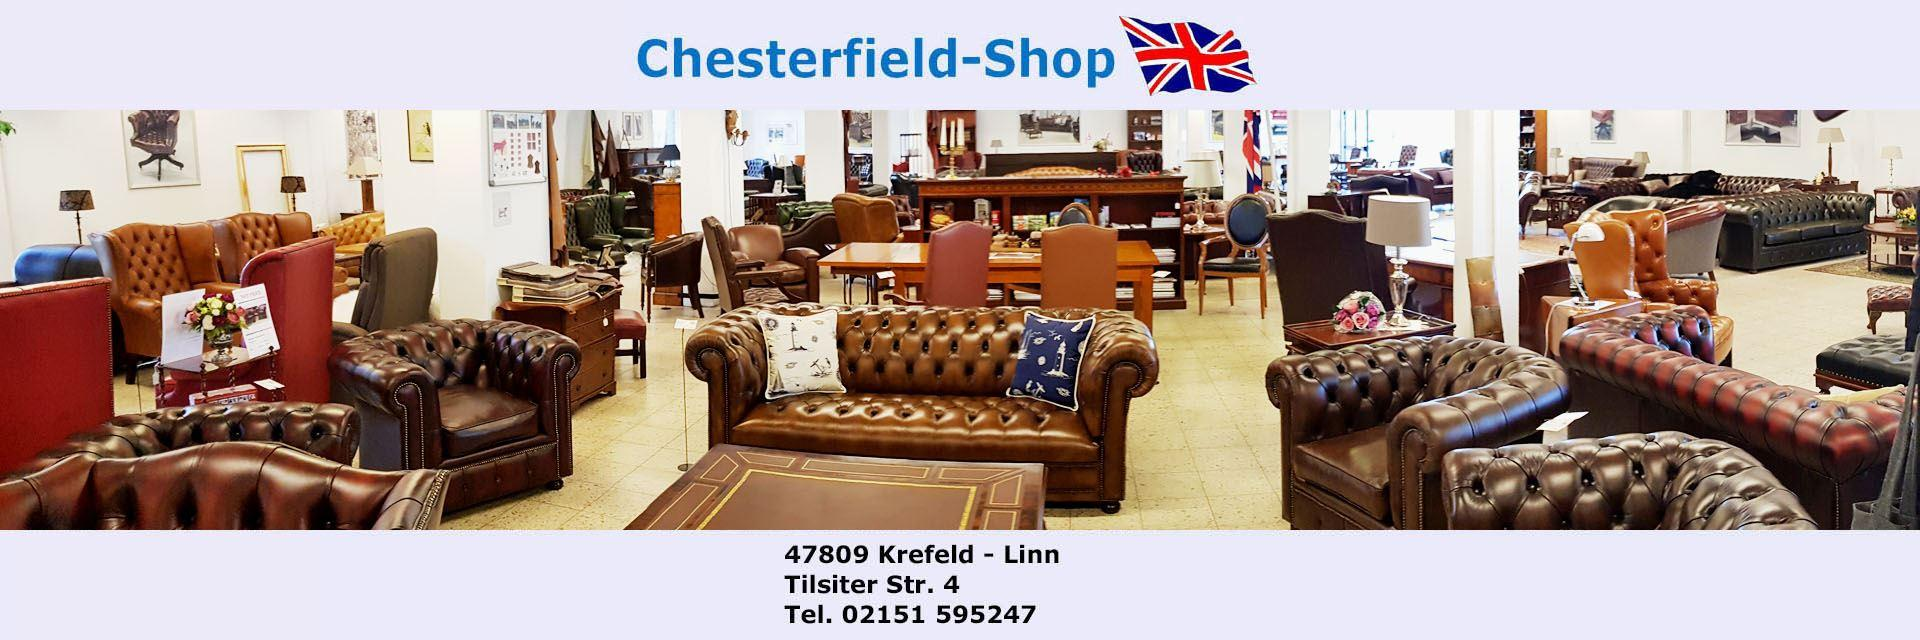 Chesterfield Shop De Chesterfield Sofas Sessel Made In England